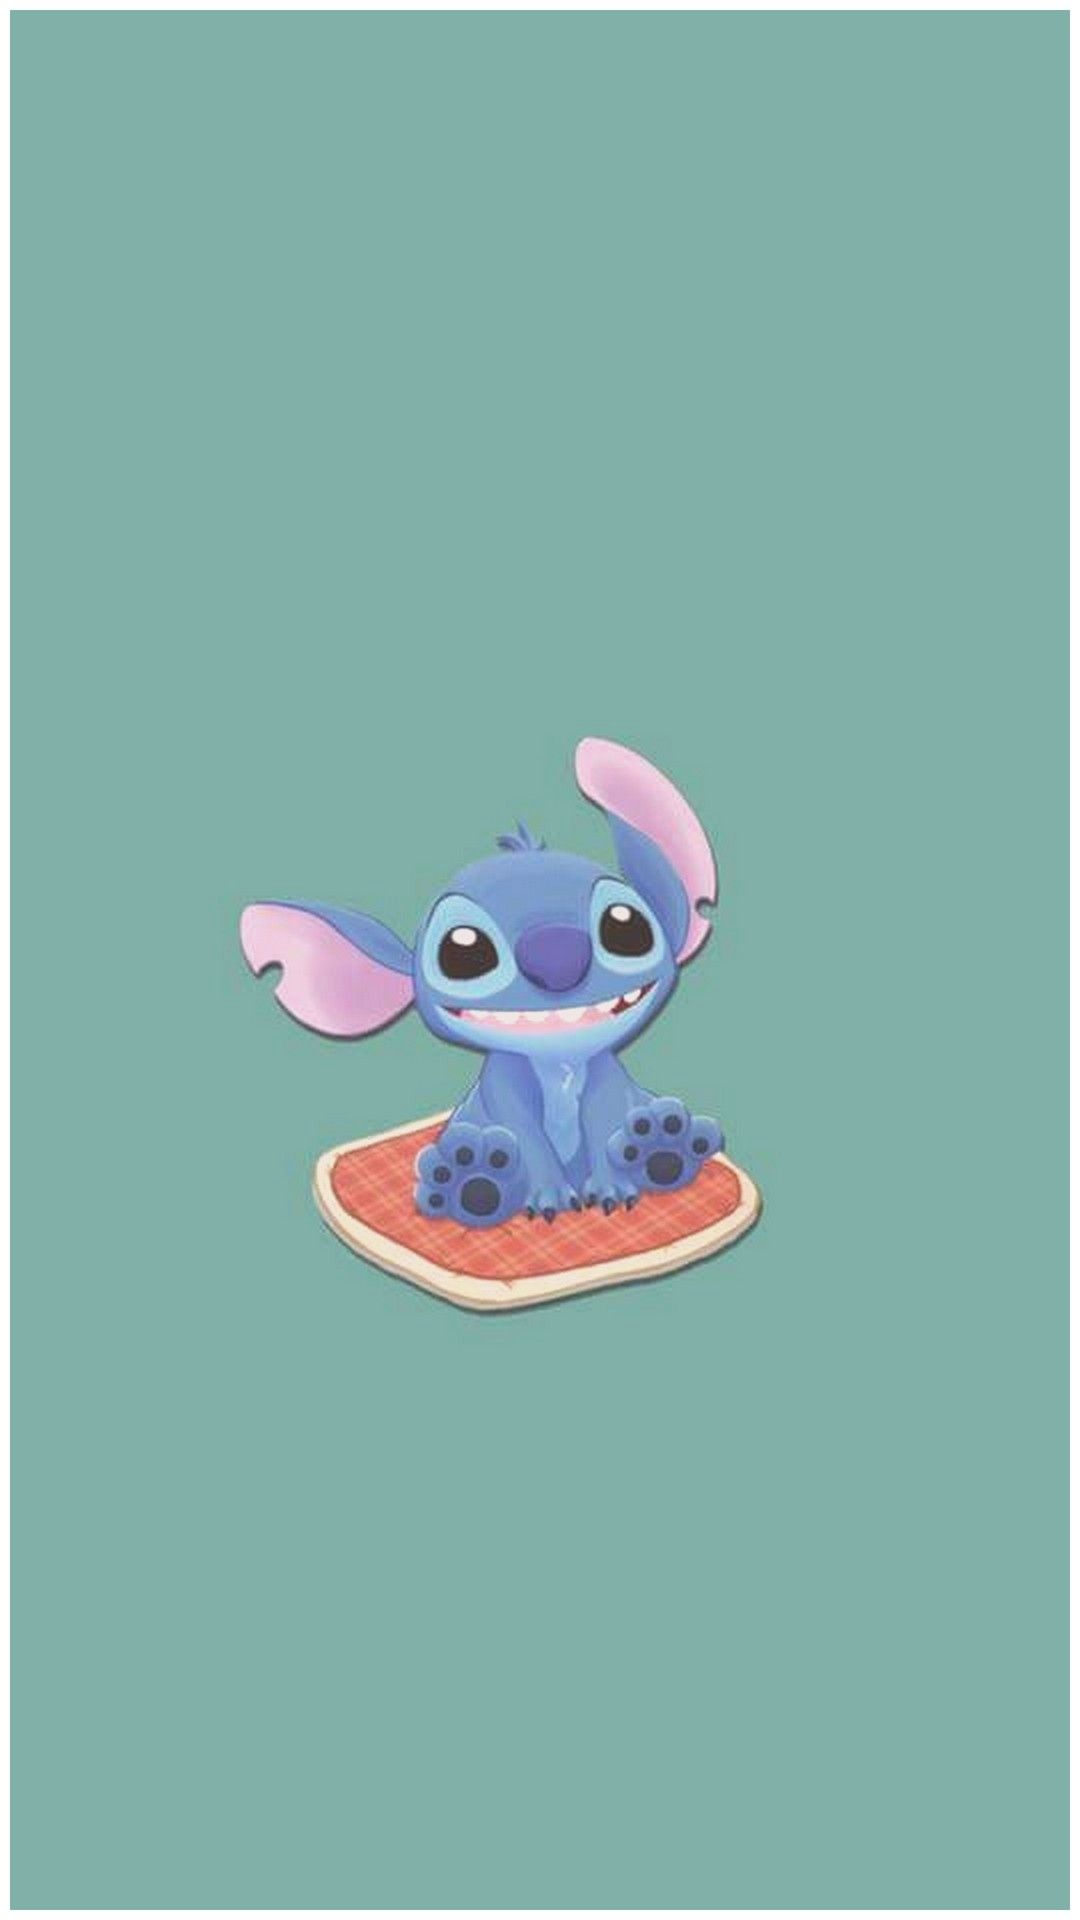 1080x1920 Disney iPhone Wallpaper Stitch – My Blog